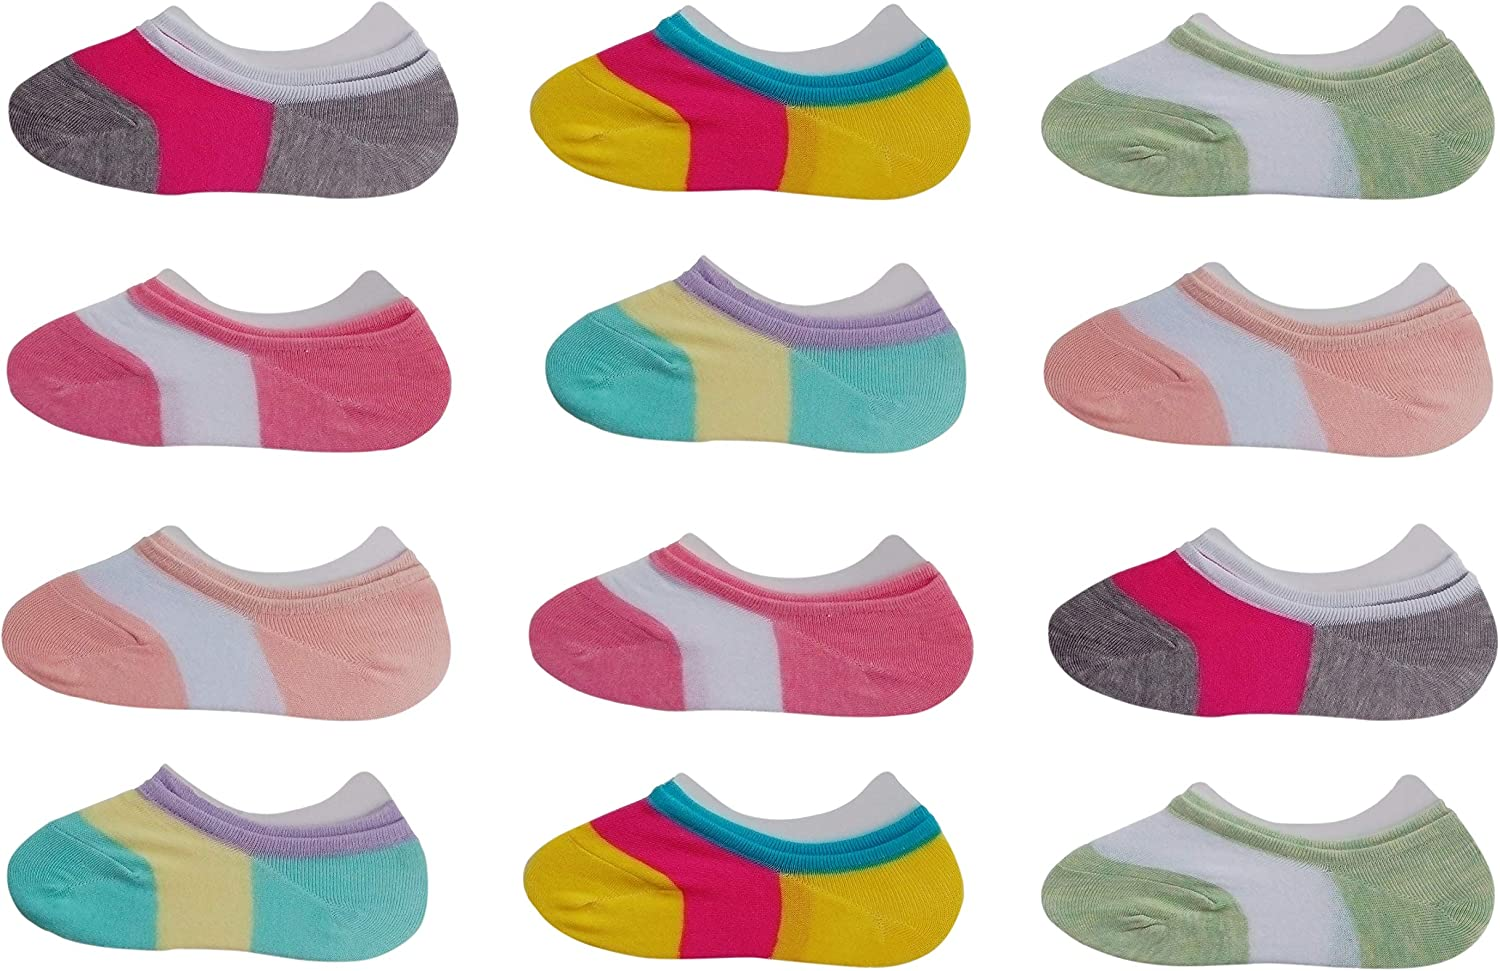 RATIVE Thin Flat Liner No Show Low Cut Cotton Socks For Kids Girls (12-pairs/assorted): Clothing